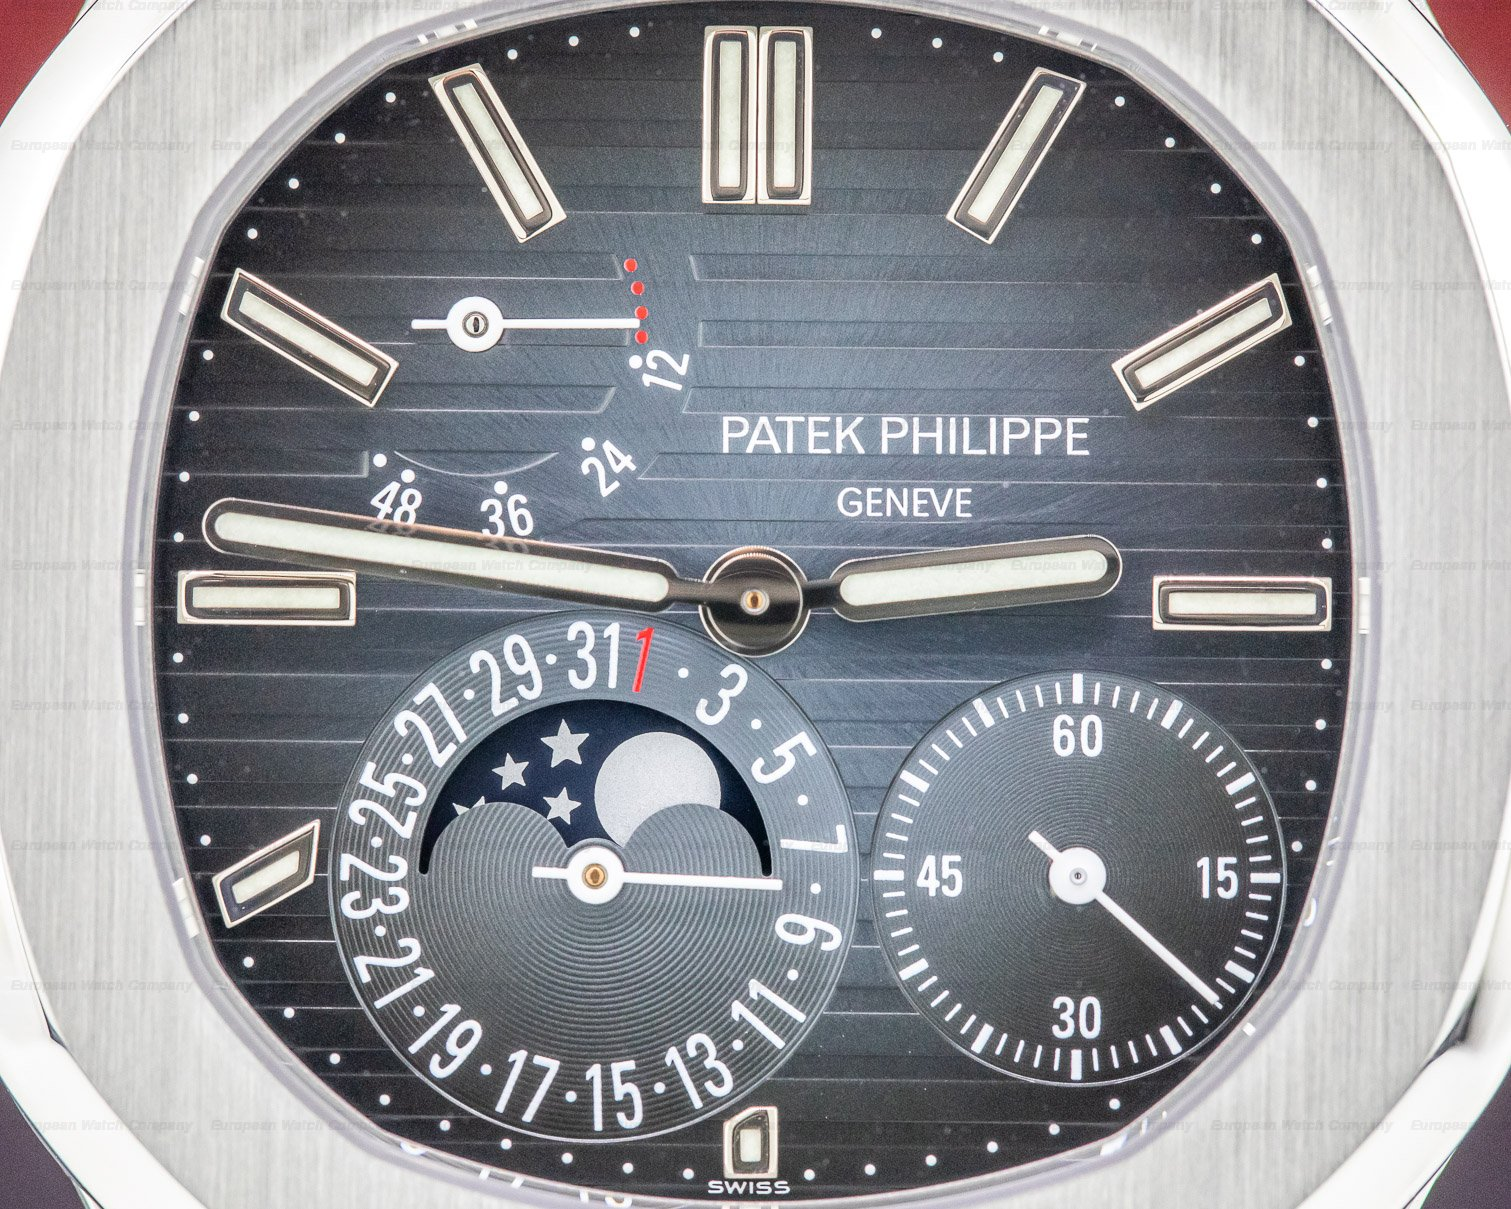 Patek Philippe 5712/1A-001 Jumbo Nautilus Moonphase Power Reserve SS